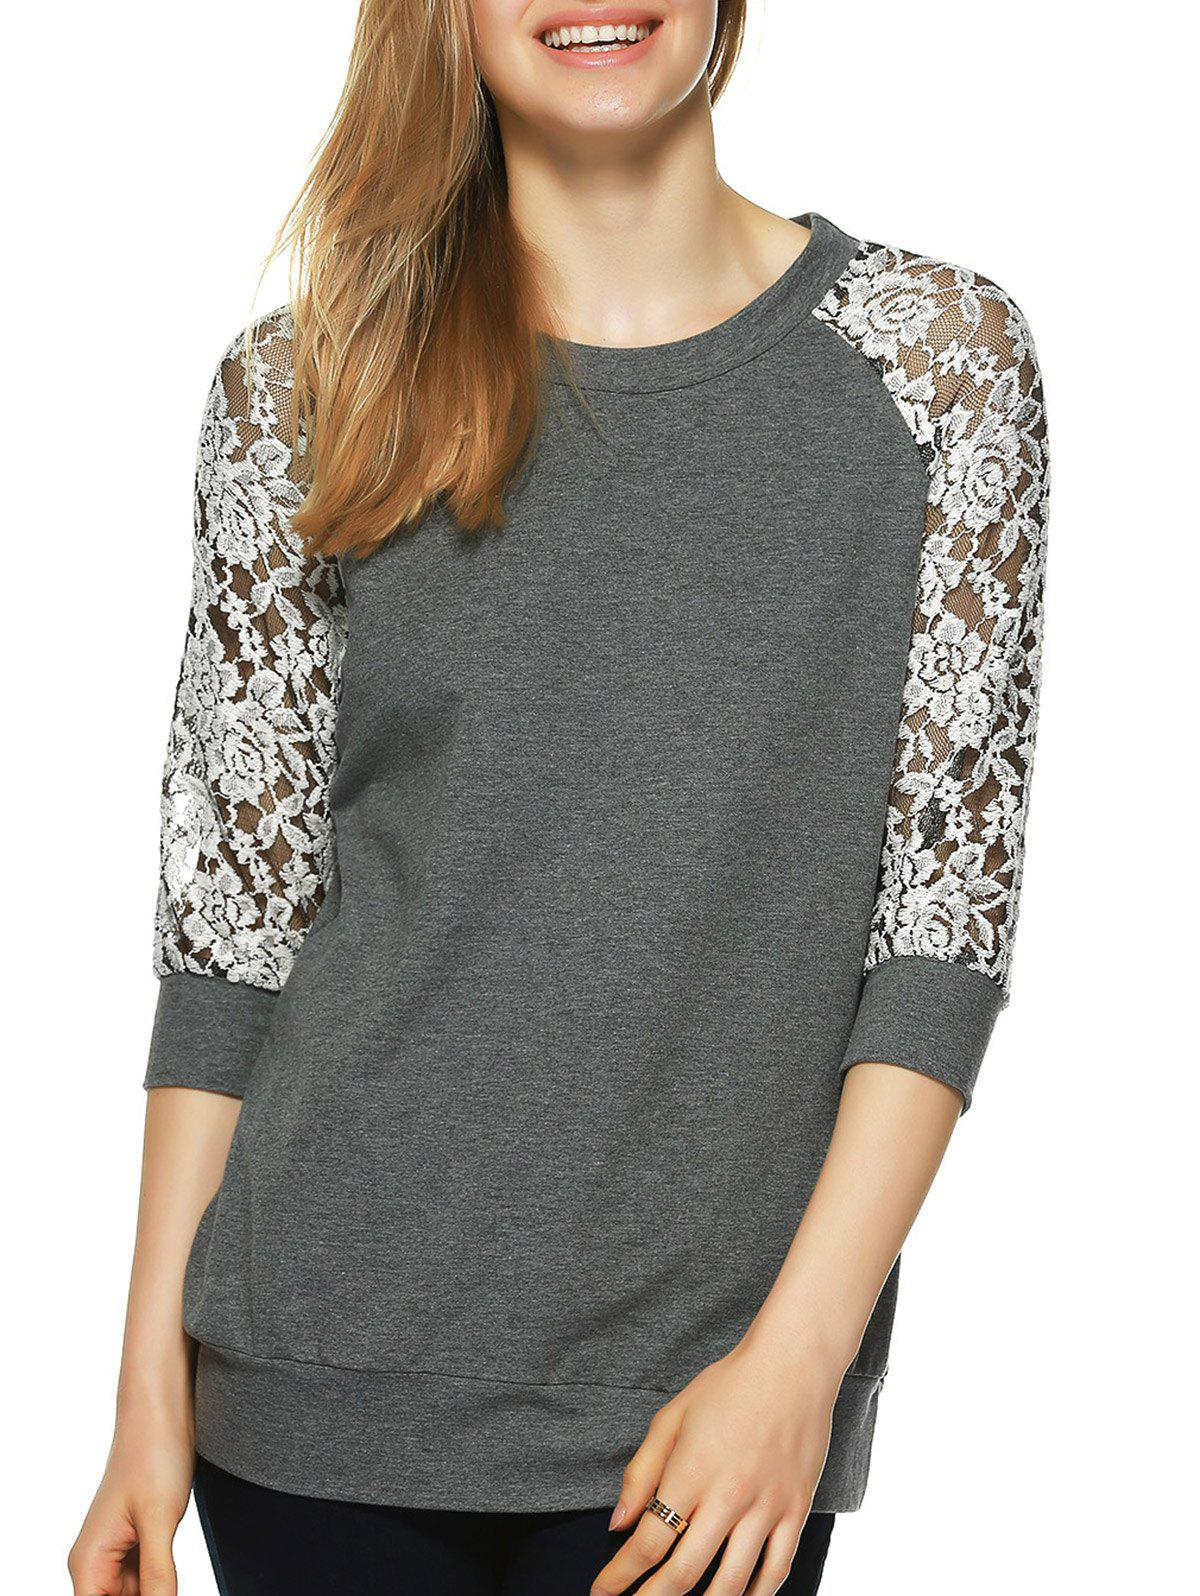 Round Neck Lace Splicing T-Shirt - M GRAY